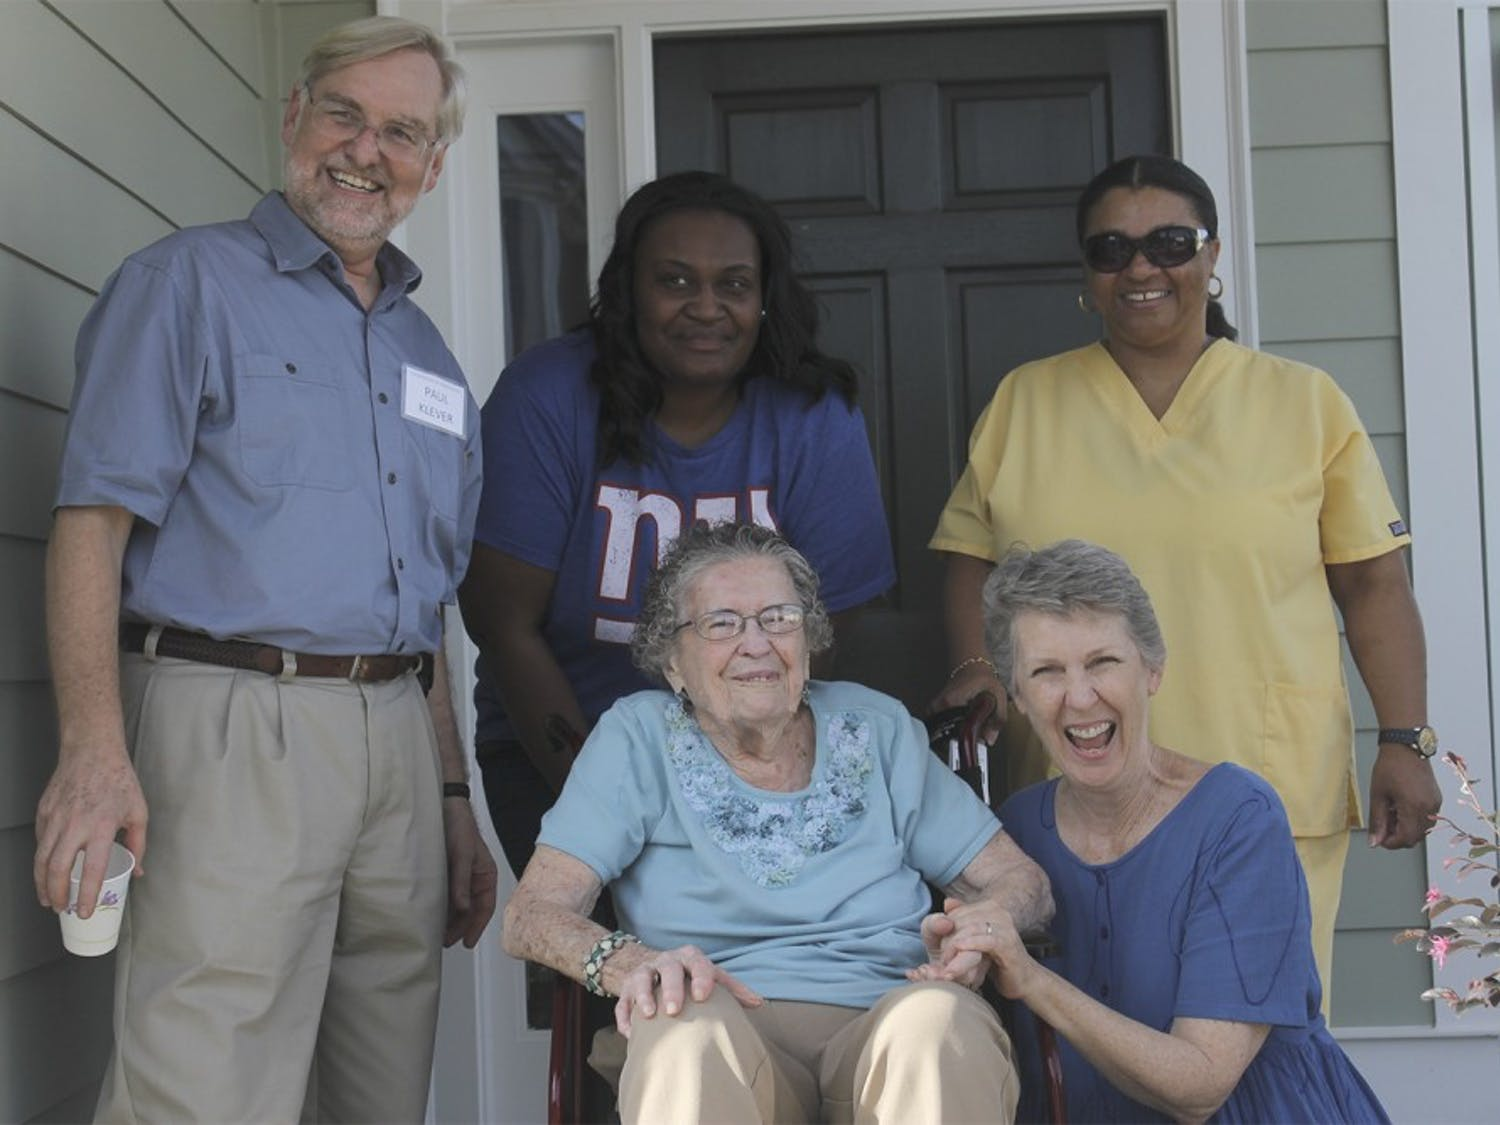 Back row from left to right: Paul Klever (Program director), LaToya Olsten (Nursing Assistant), Cynthia Bailey (Certified Nursing Assistant)